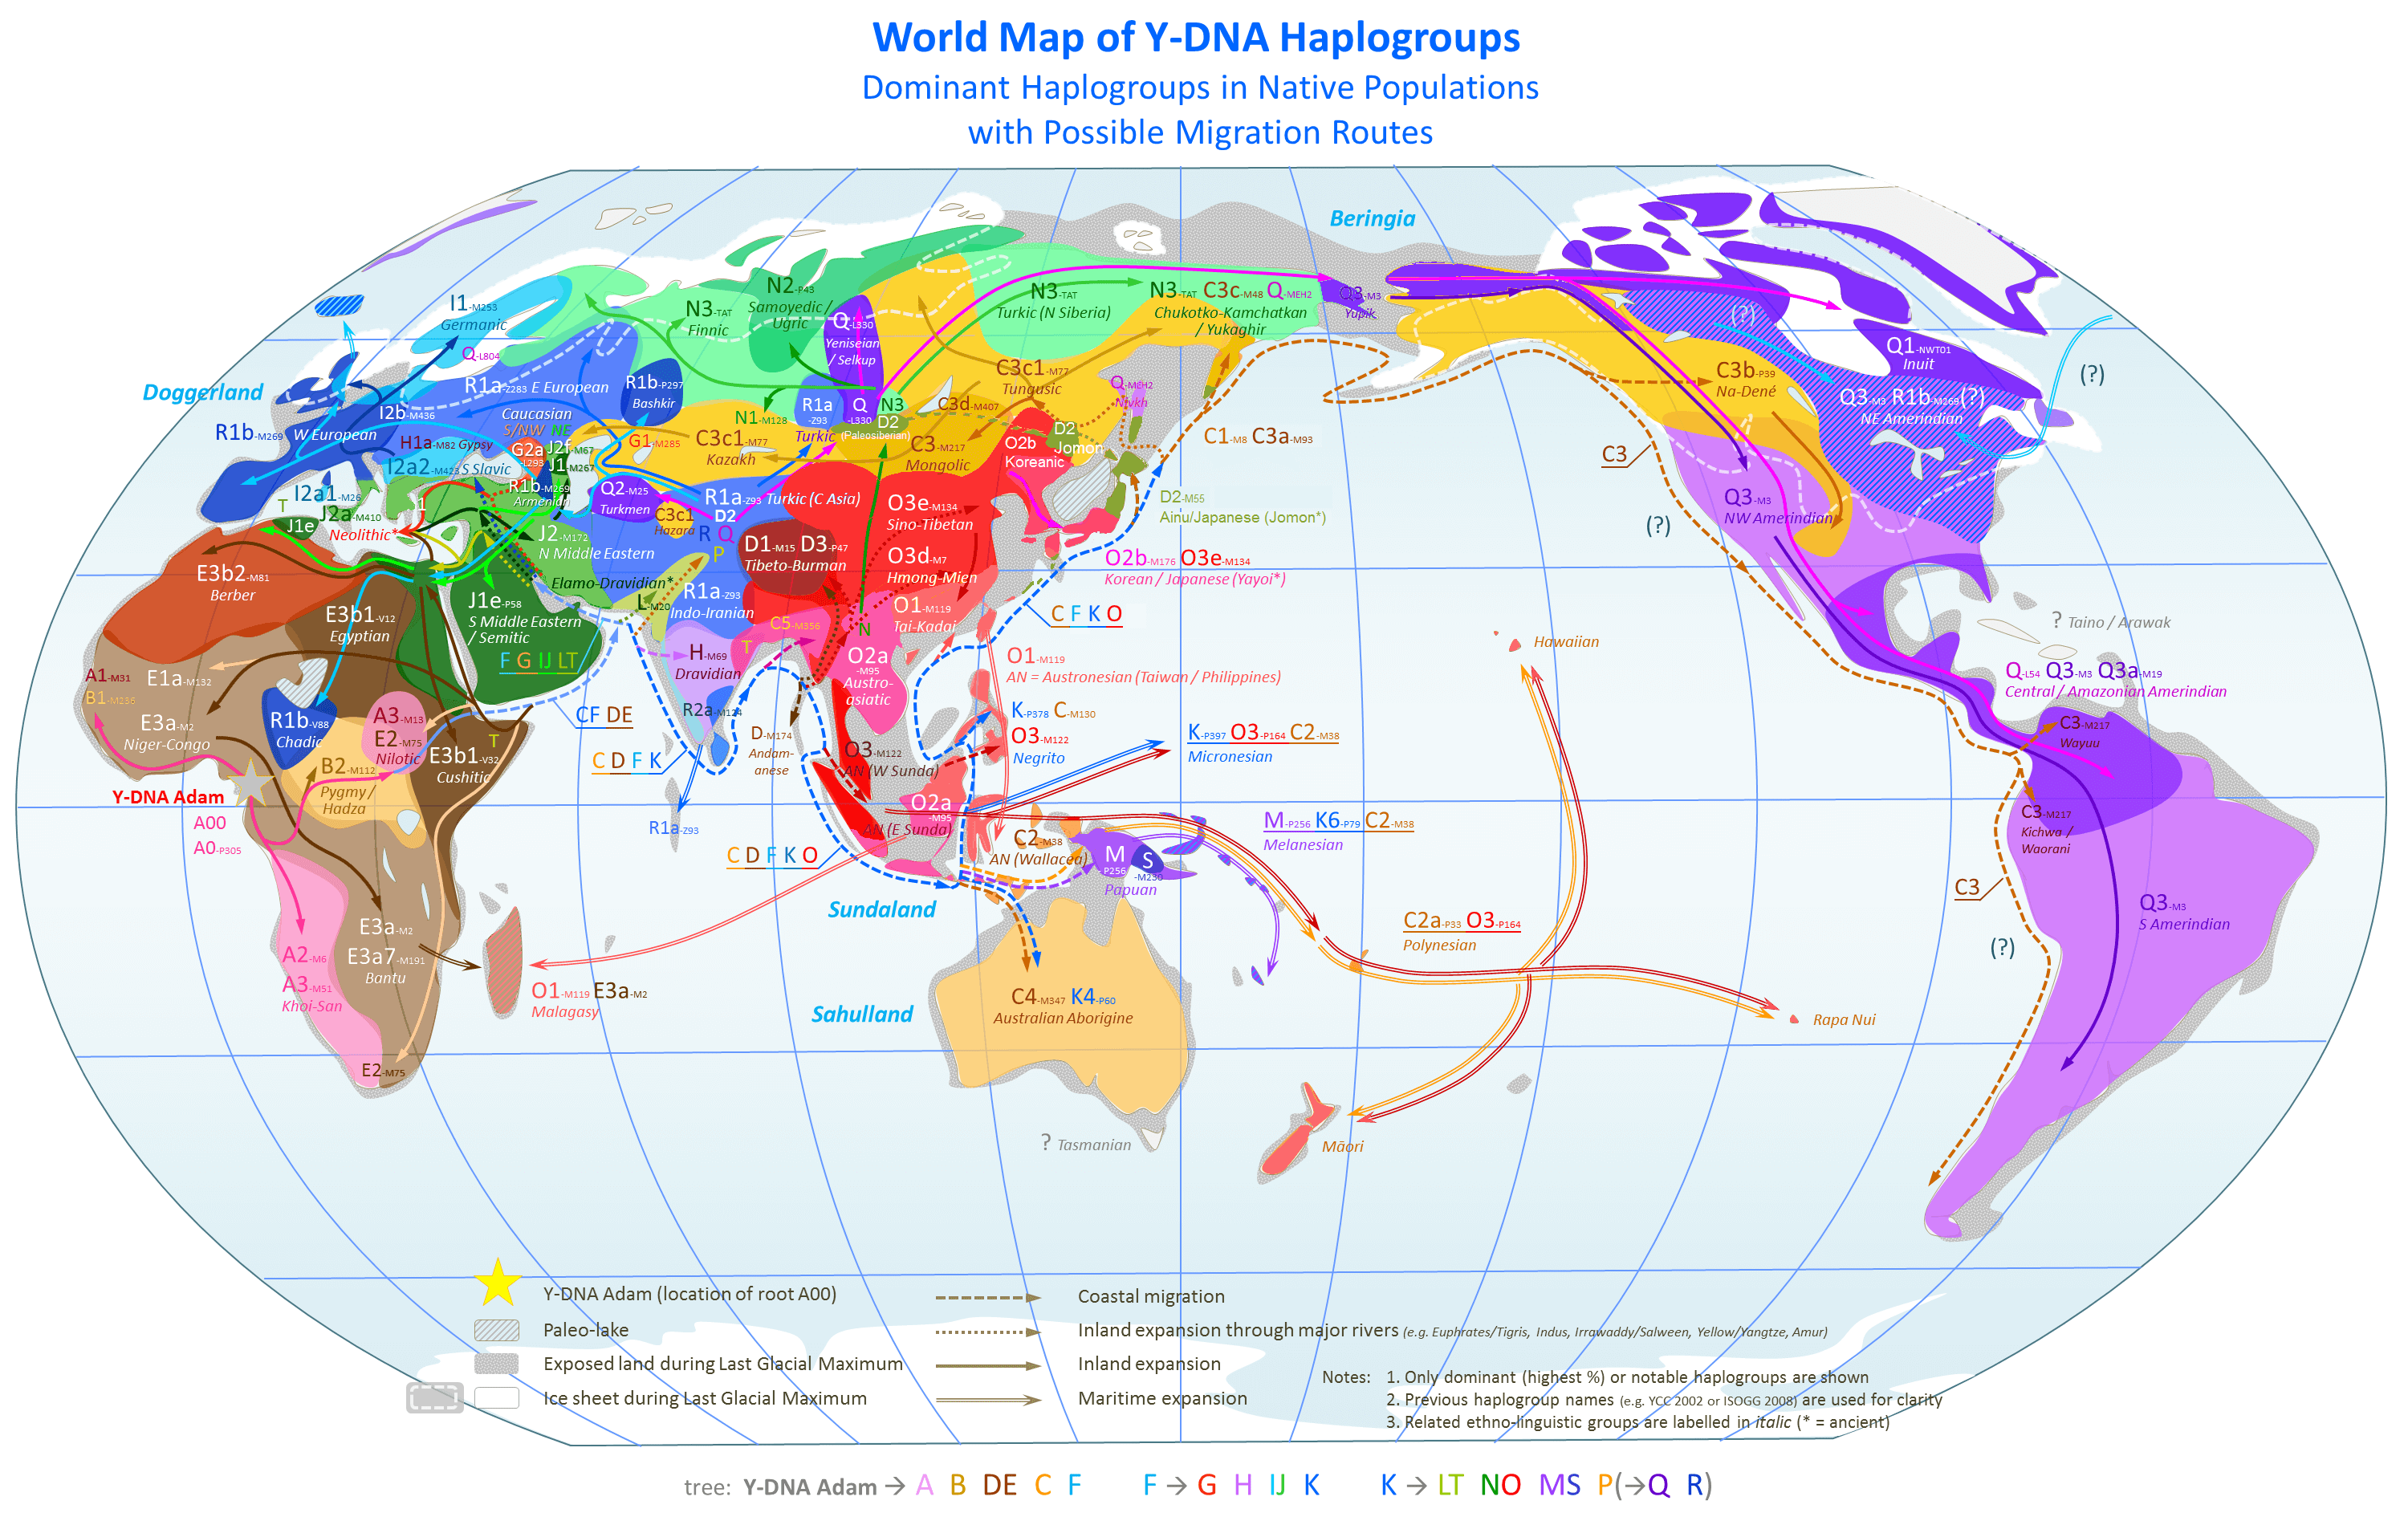 Fileworld map of y dna haplogroupsg wikimedia commons fileworld map of y dna haplogroupsg gumiabroncs Image collections